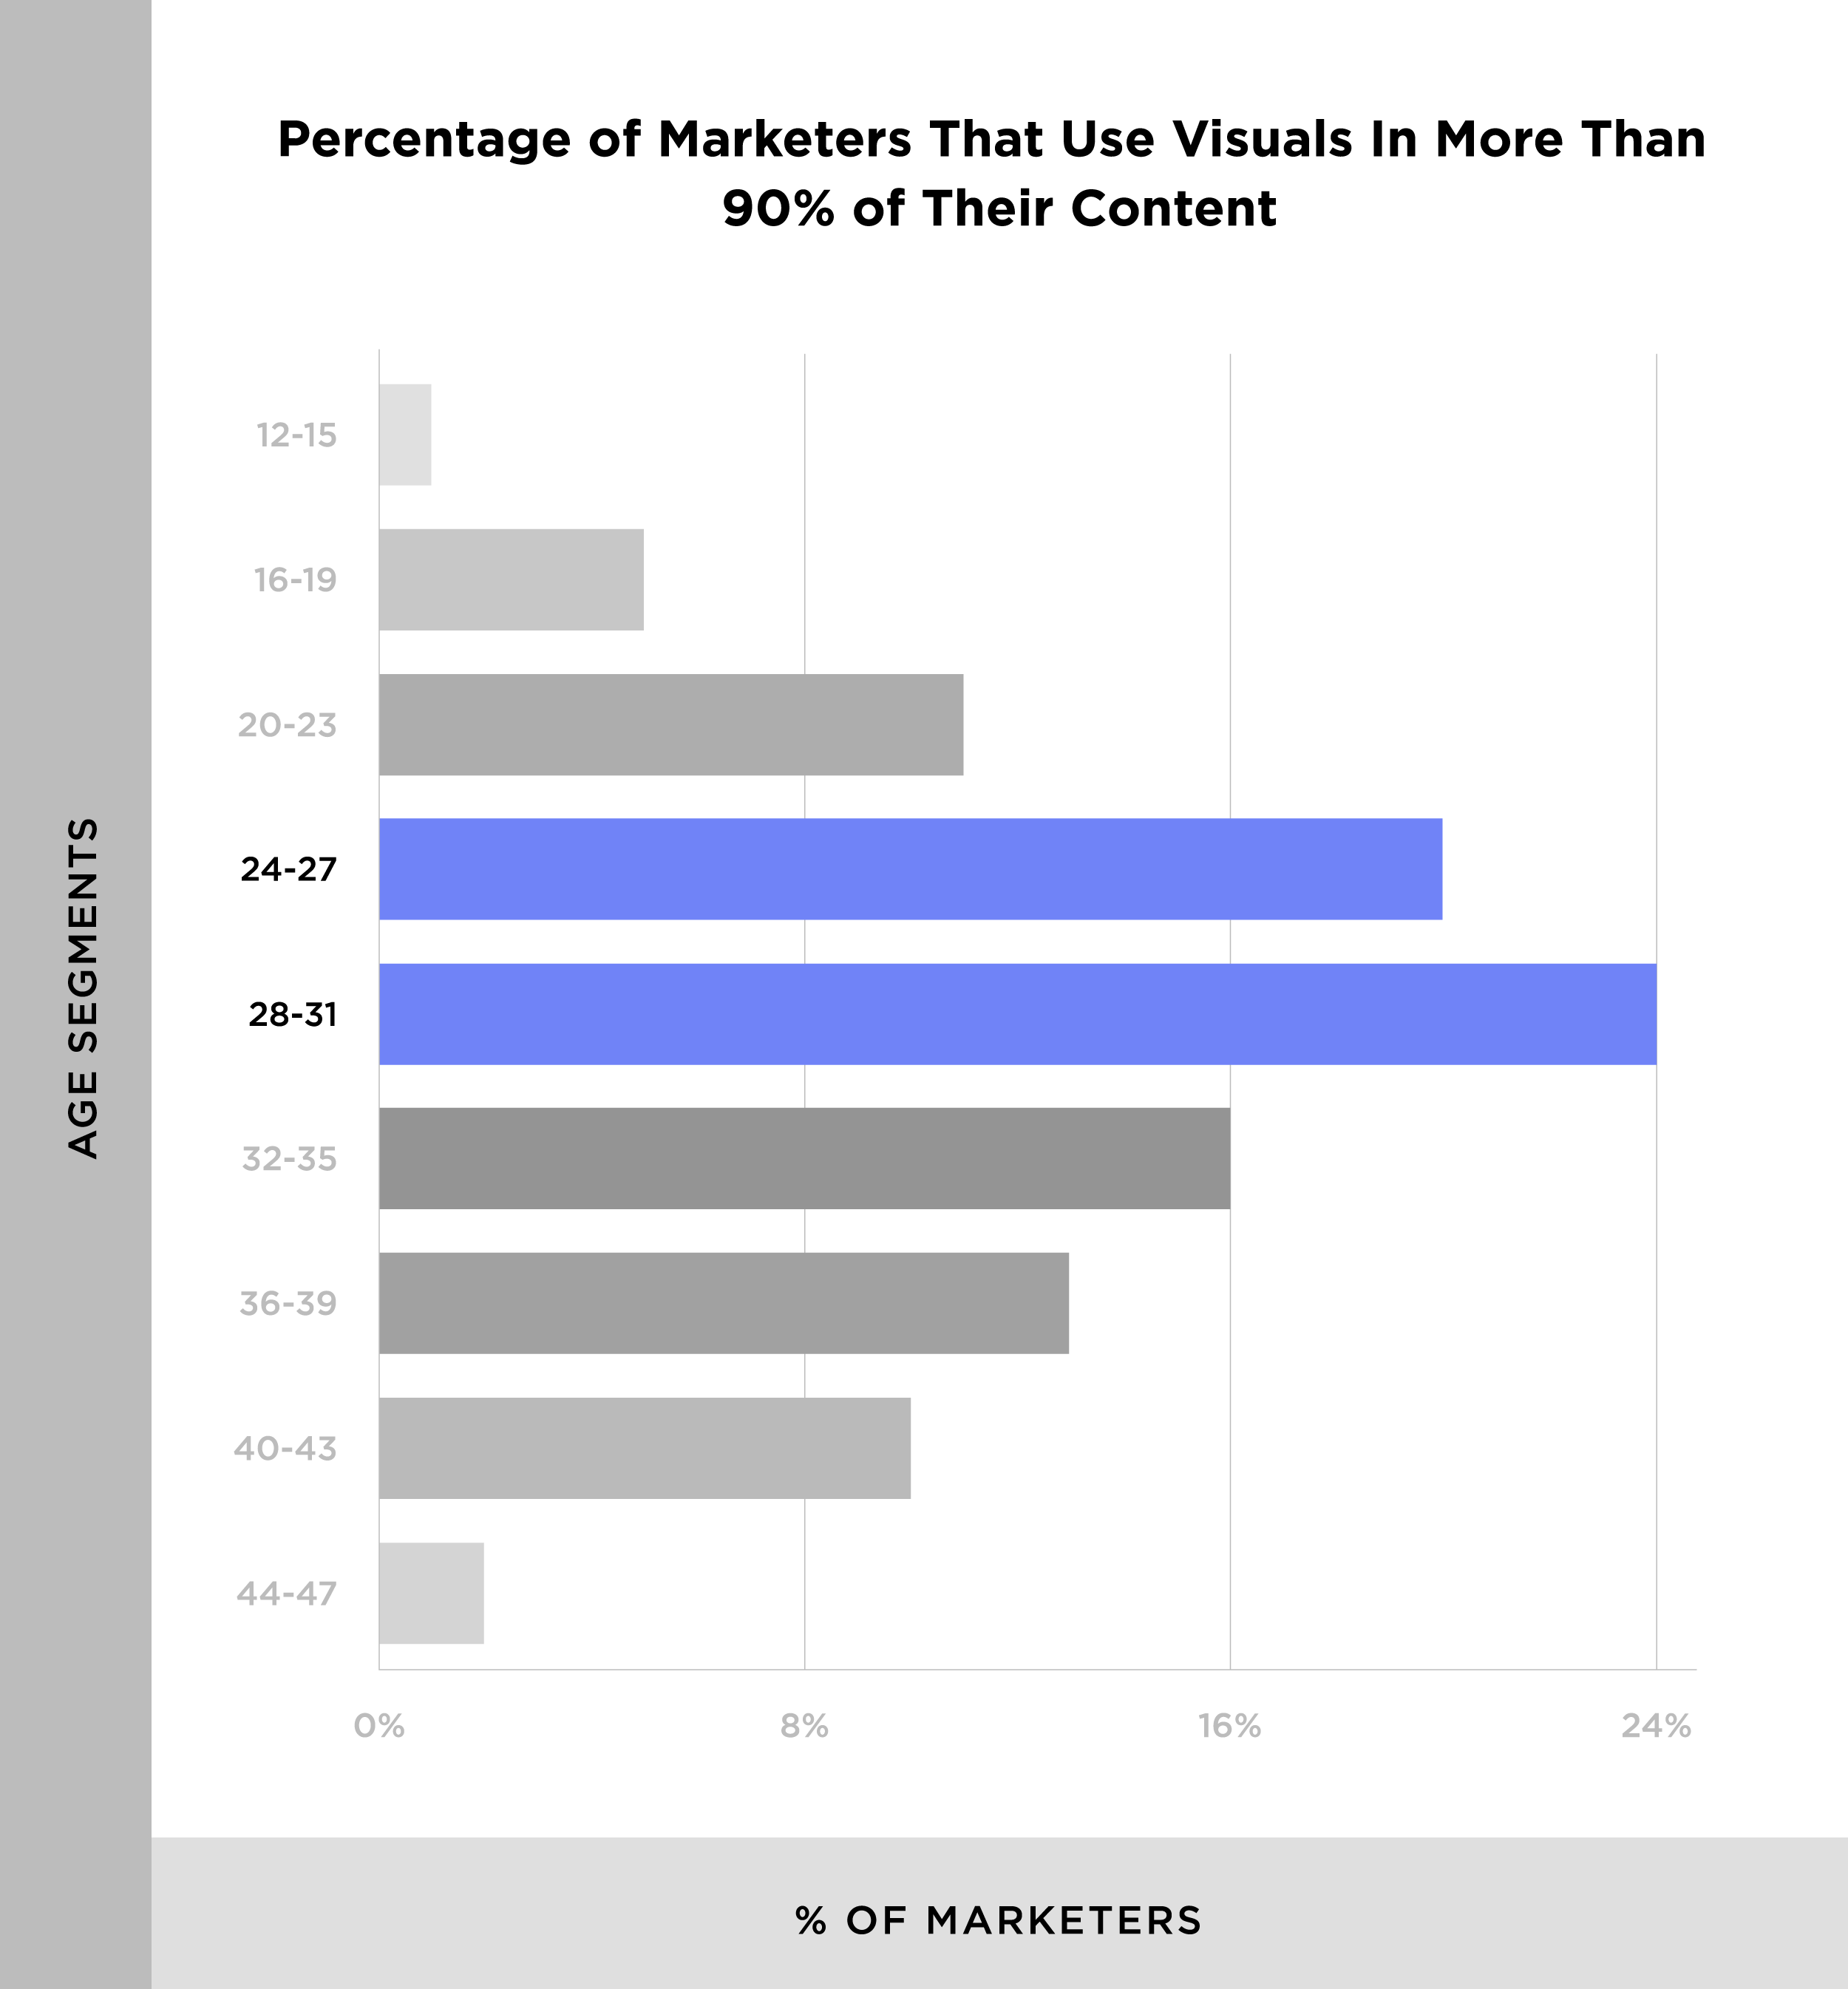 Percentage of marketers that use visuals